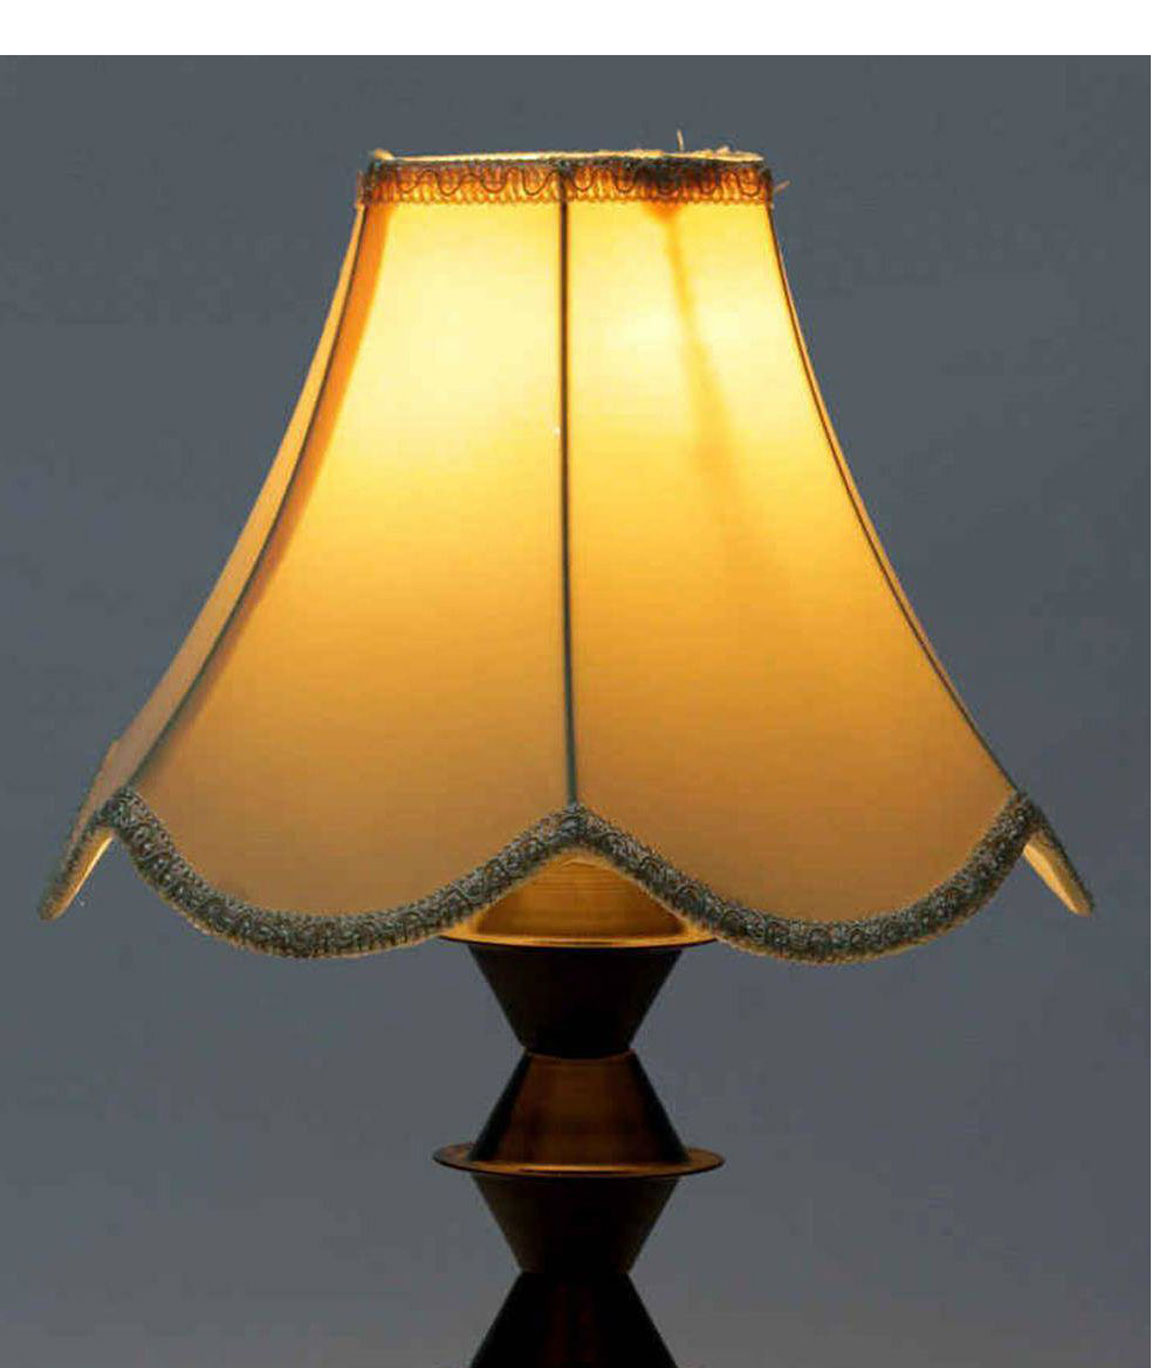 RDC 10 Inches Lotus-Shaped Cream with Lace Border Lamp Shade for Table Lamp (E27 Holder Ring)